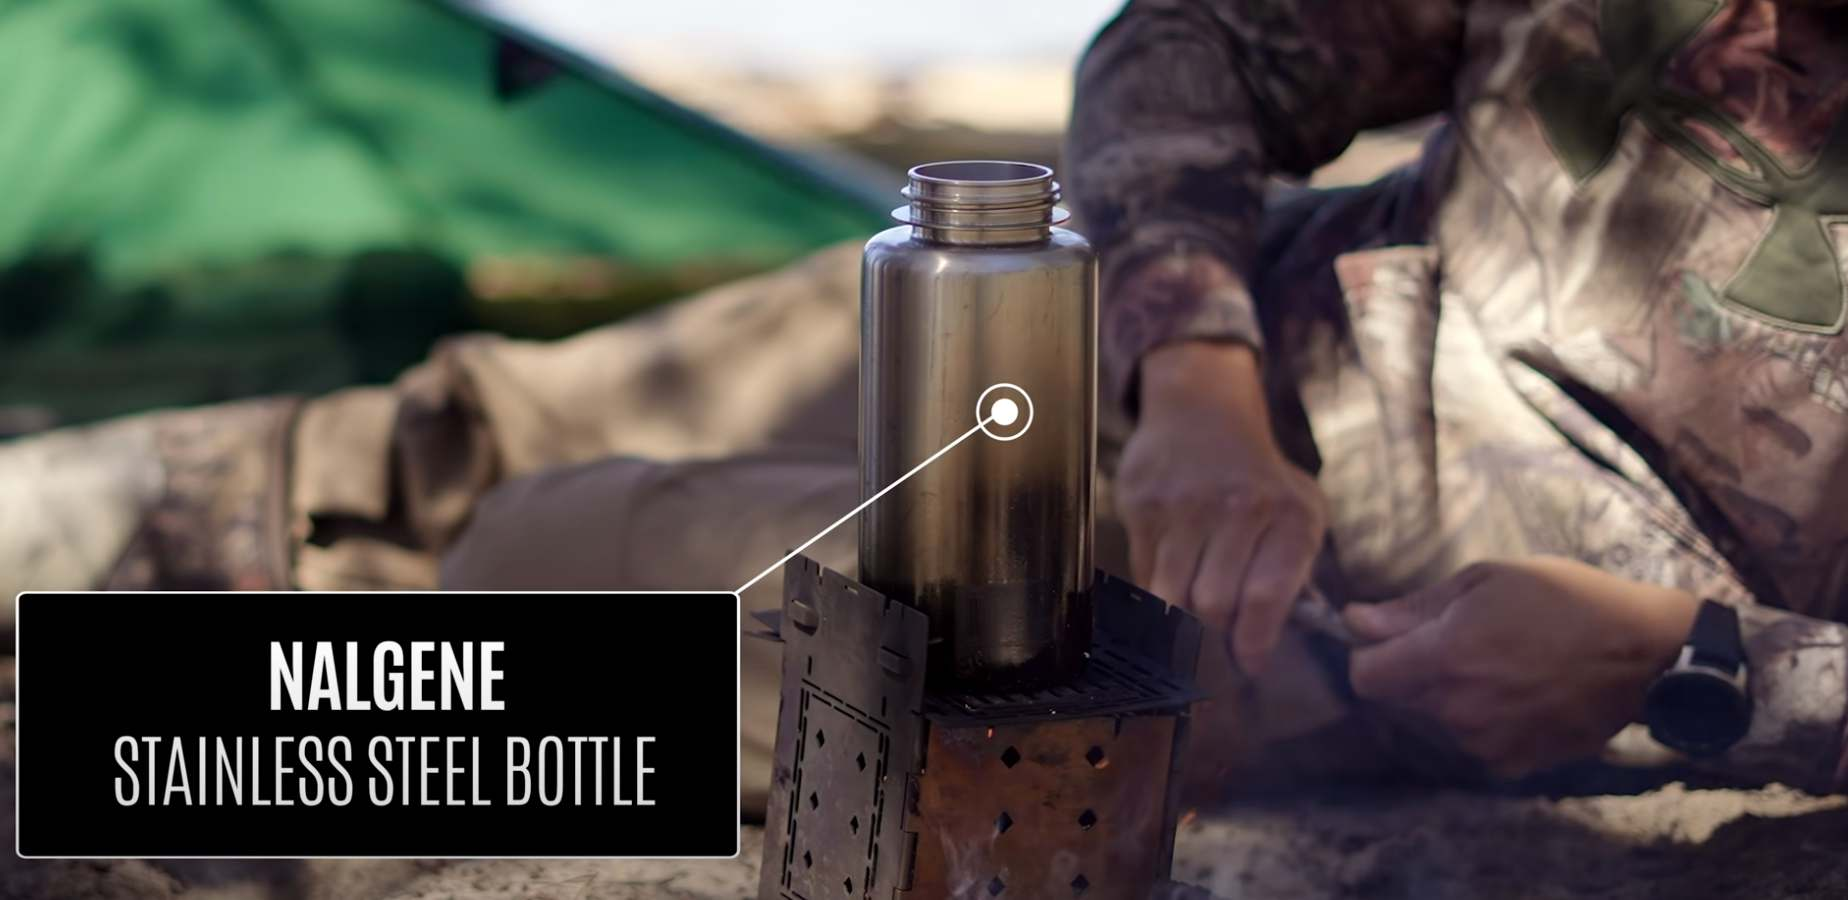 nalgene stainless steel water bottle boiling water on a firebox camp stove